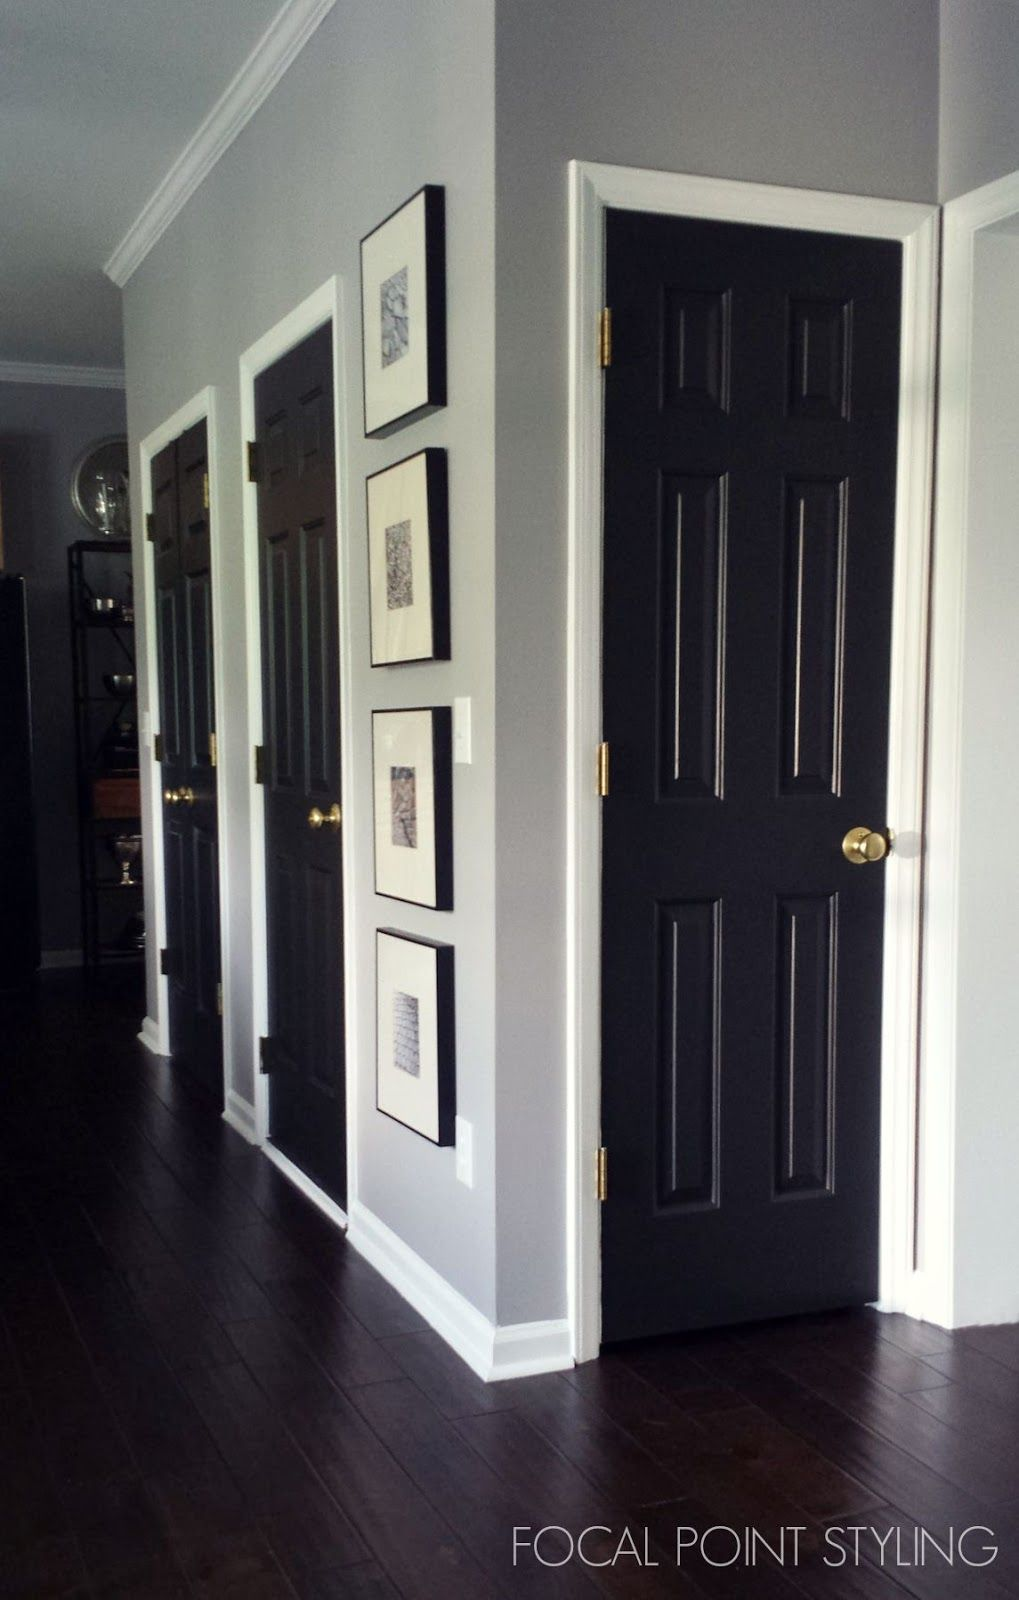 FOCAL POINT STYLING: Painting Interior Doors Black